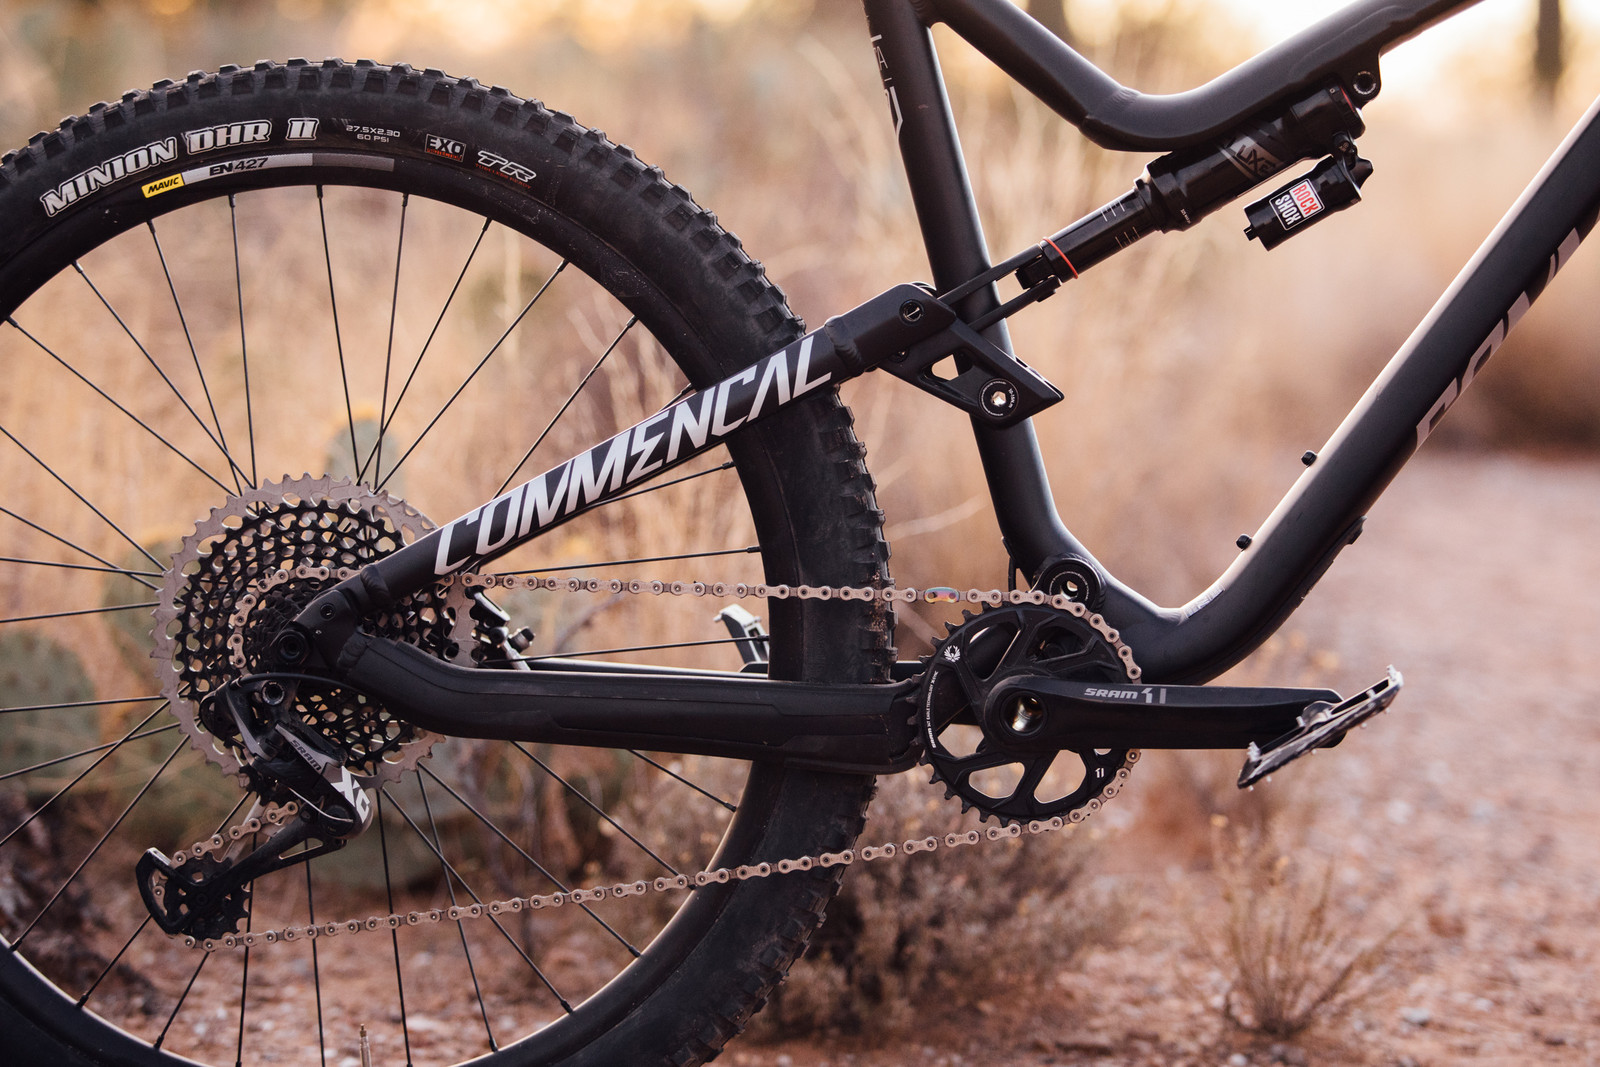 Commencal Meta AM V4.2 Race Eagle 650b - 2017 Vital MTB Test Sessions - Commencal Meta AM V4.2 Race Eagle 650b - 2017 Vital MTB Test Sessions - Mountain Biking Pictures - Vital MTB